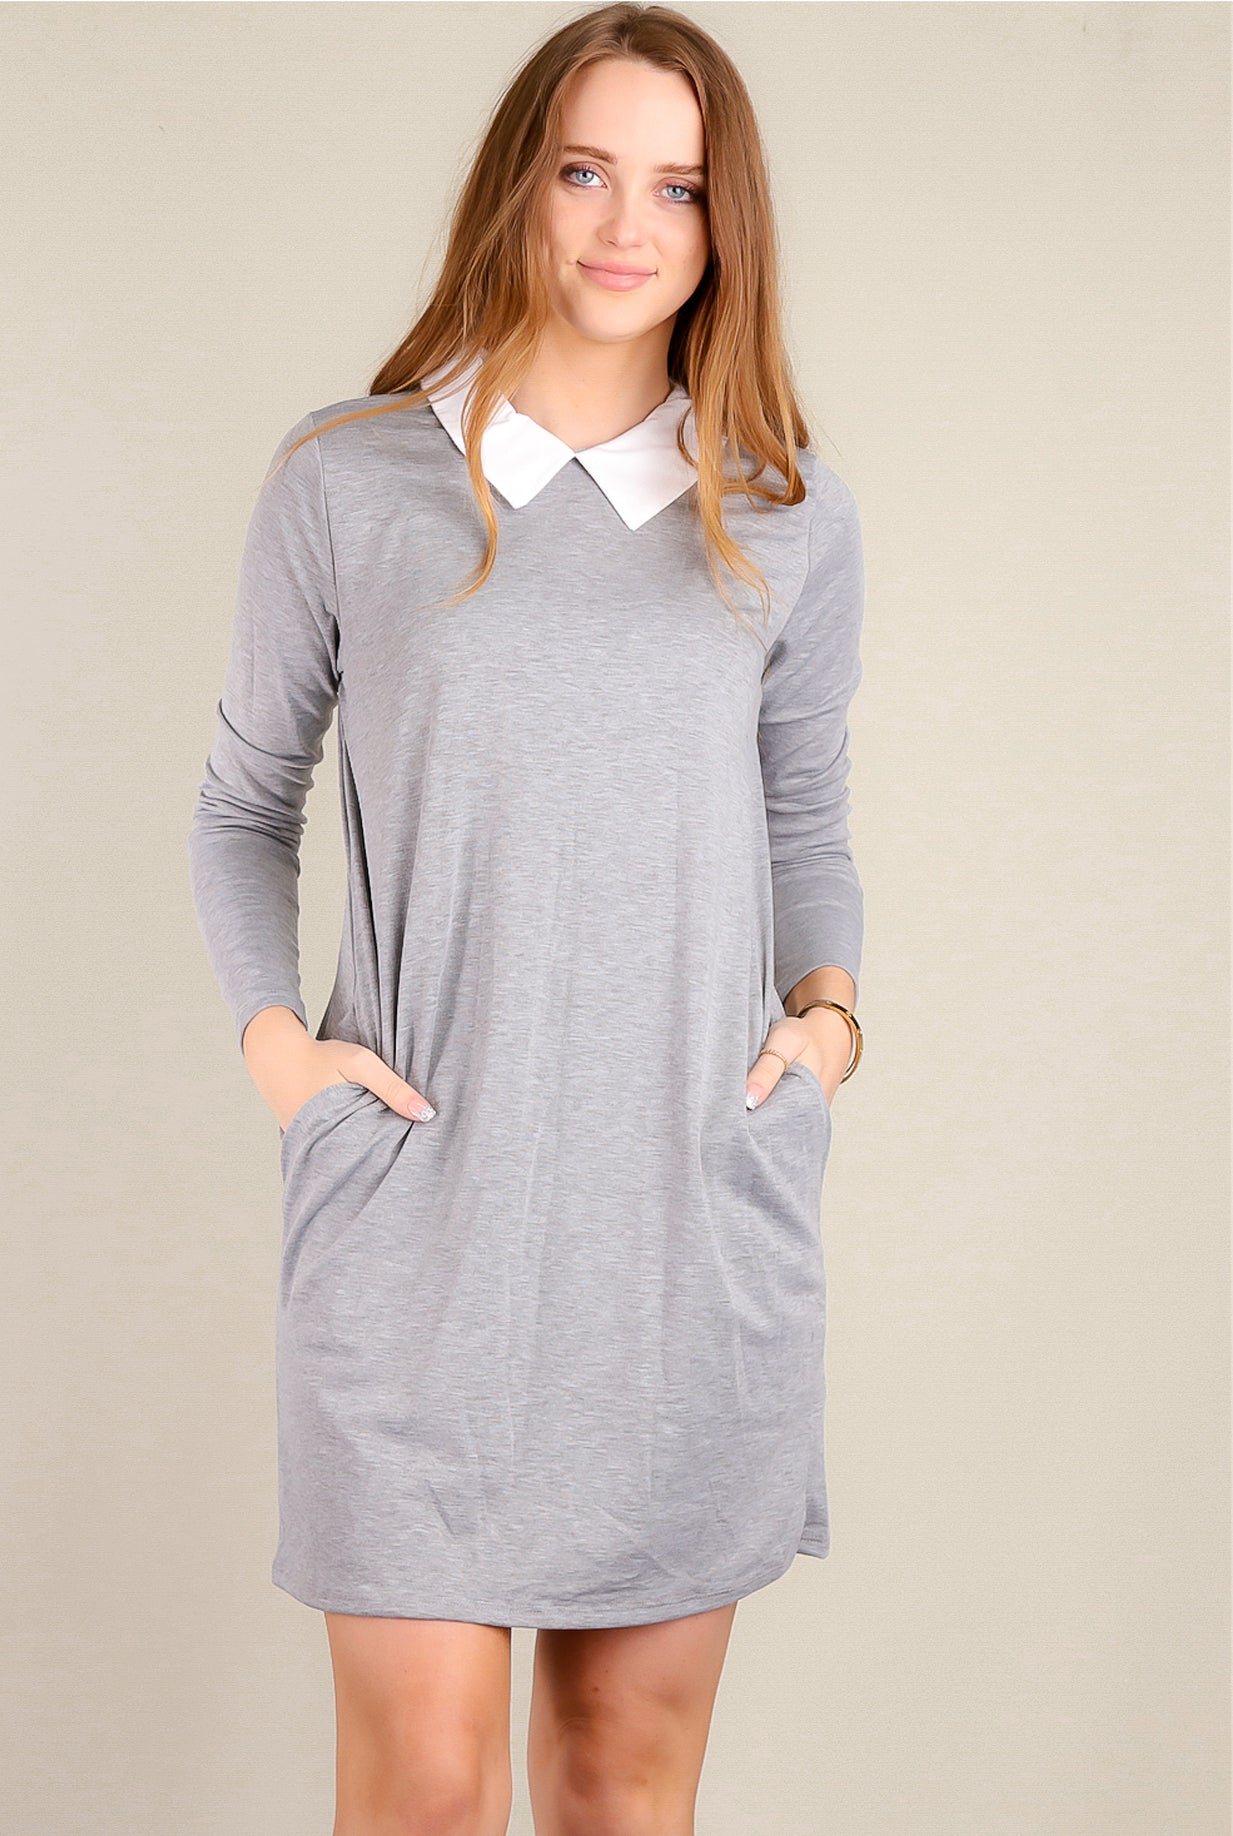 Grey Pocketed Collared Dress